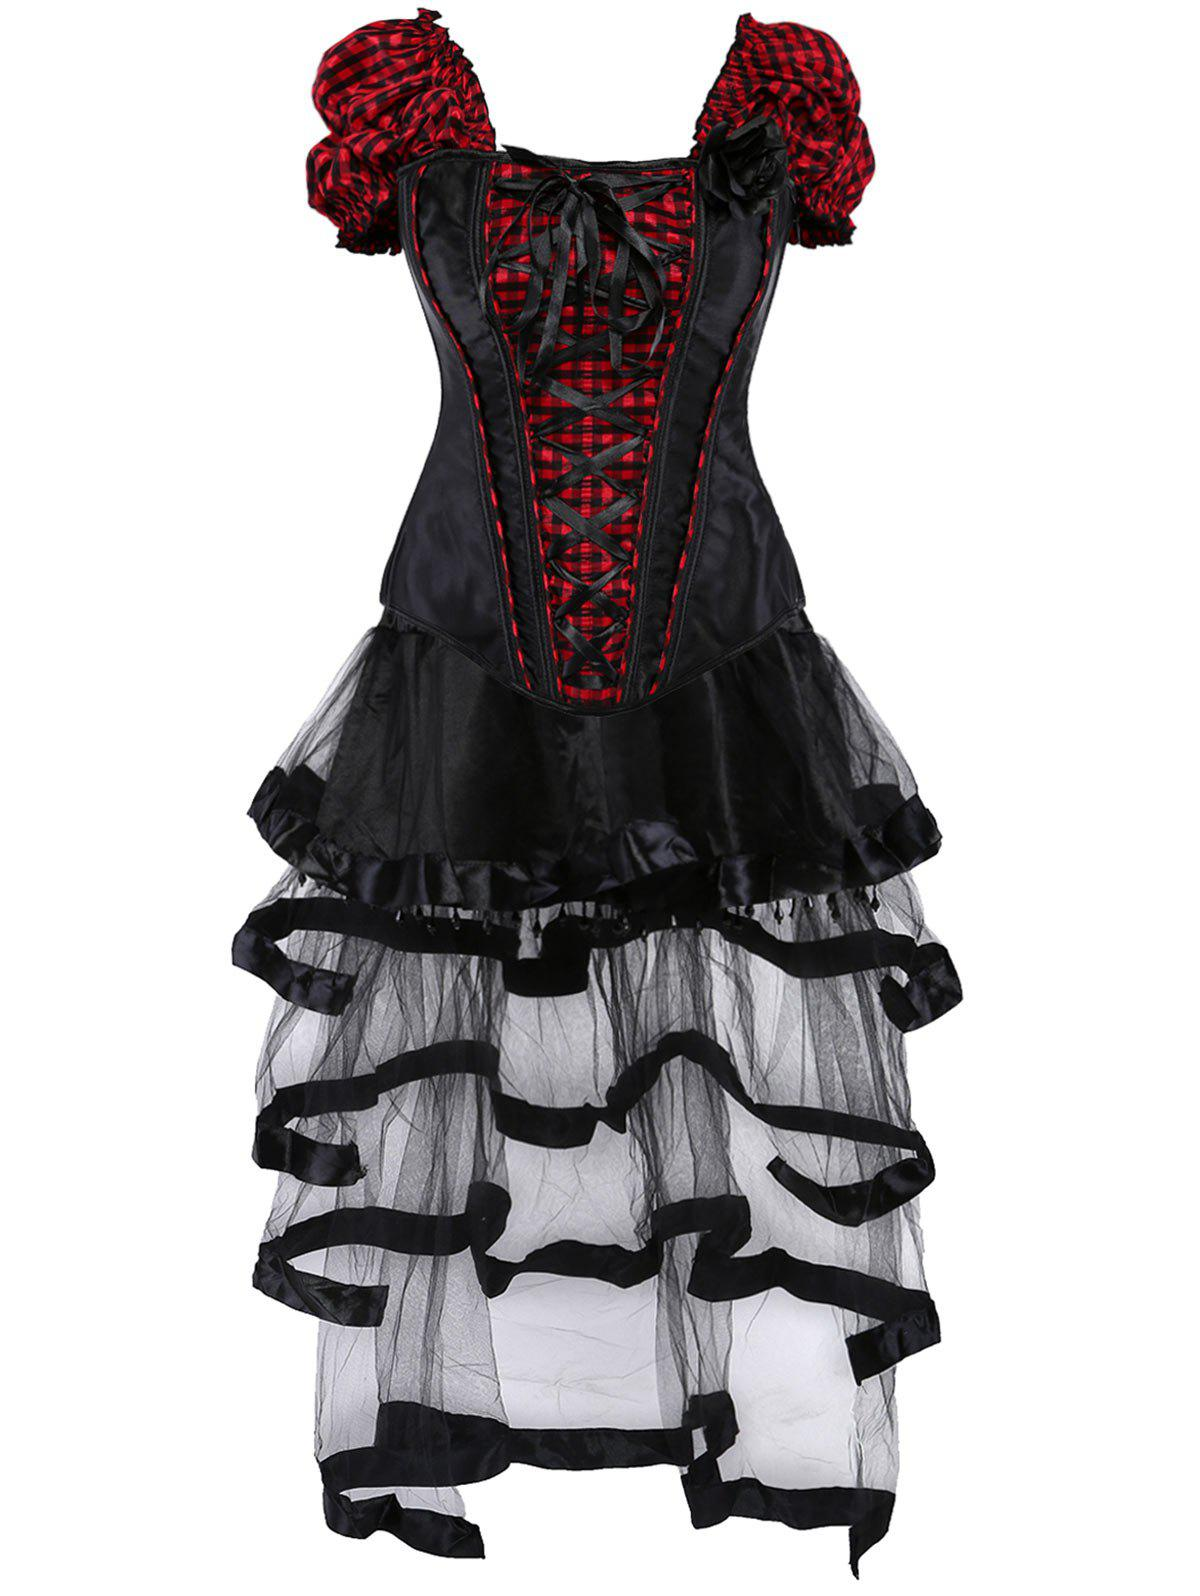 Hot Checked Lace Up Gothic Corset Top with Sheer Skirt